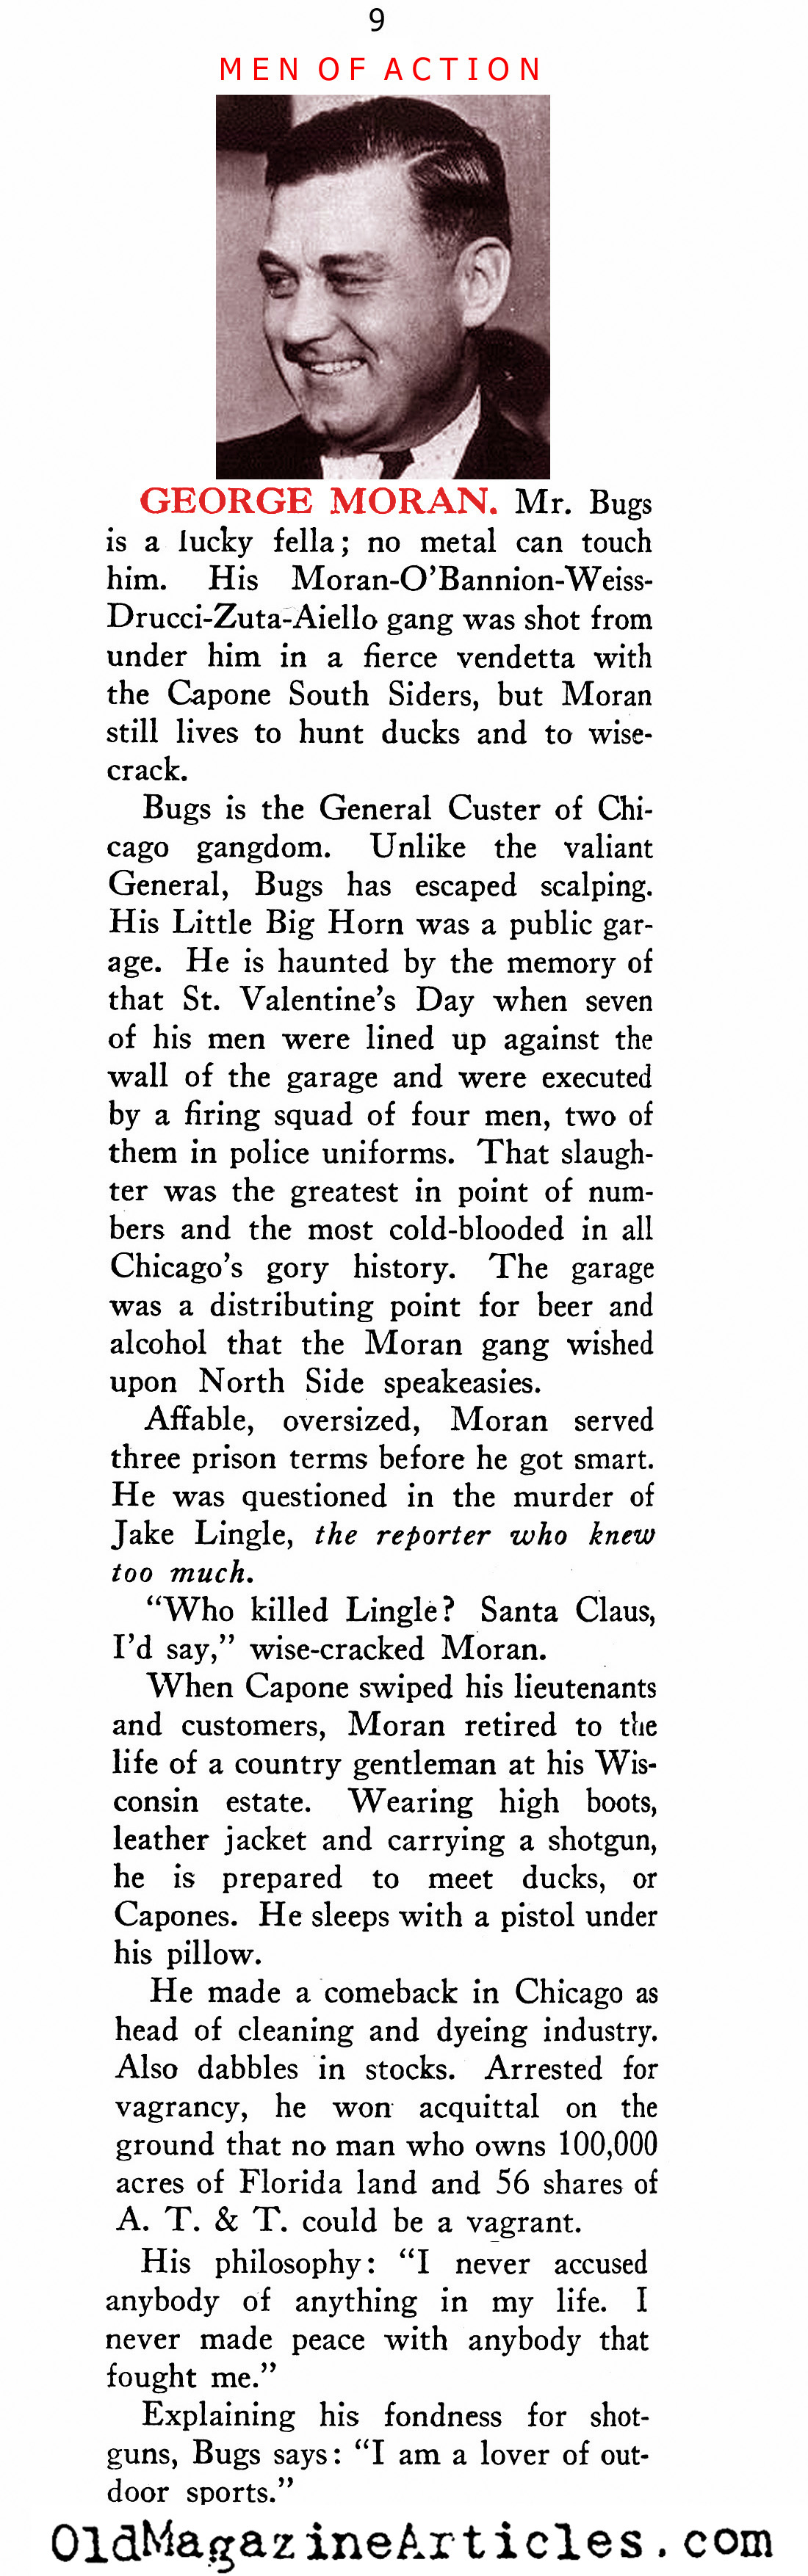 The Mobsters (New Outlook Magazine, 1933)